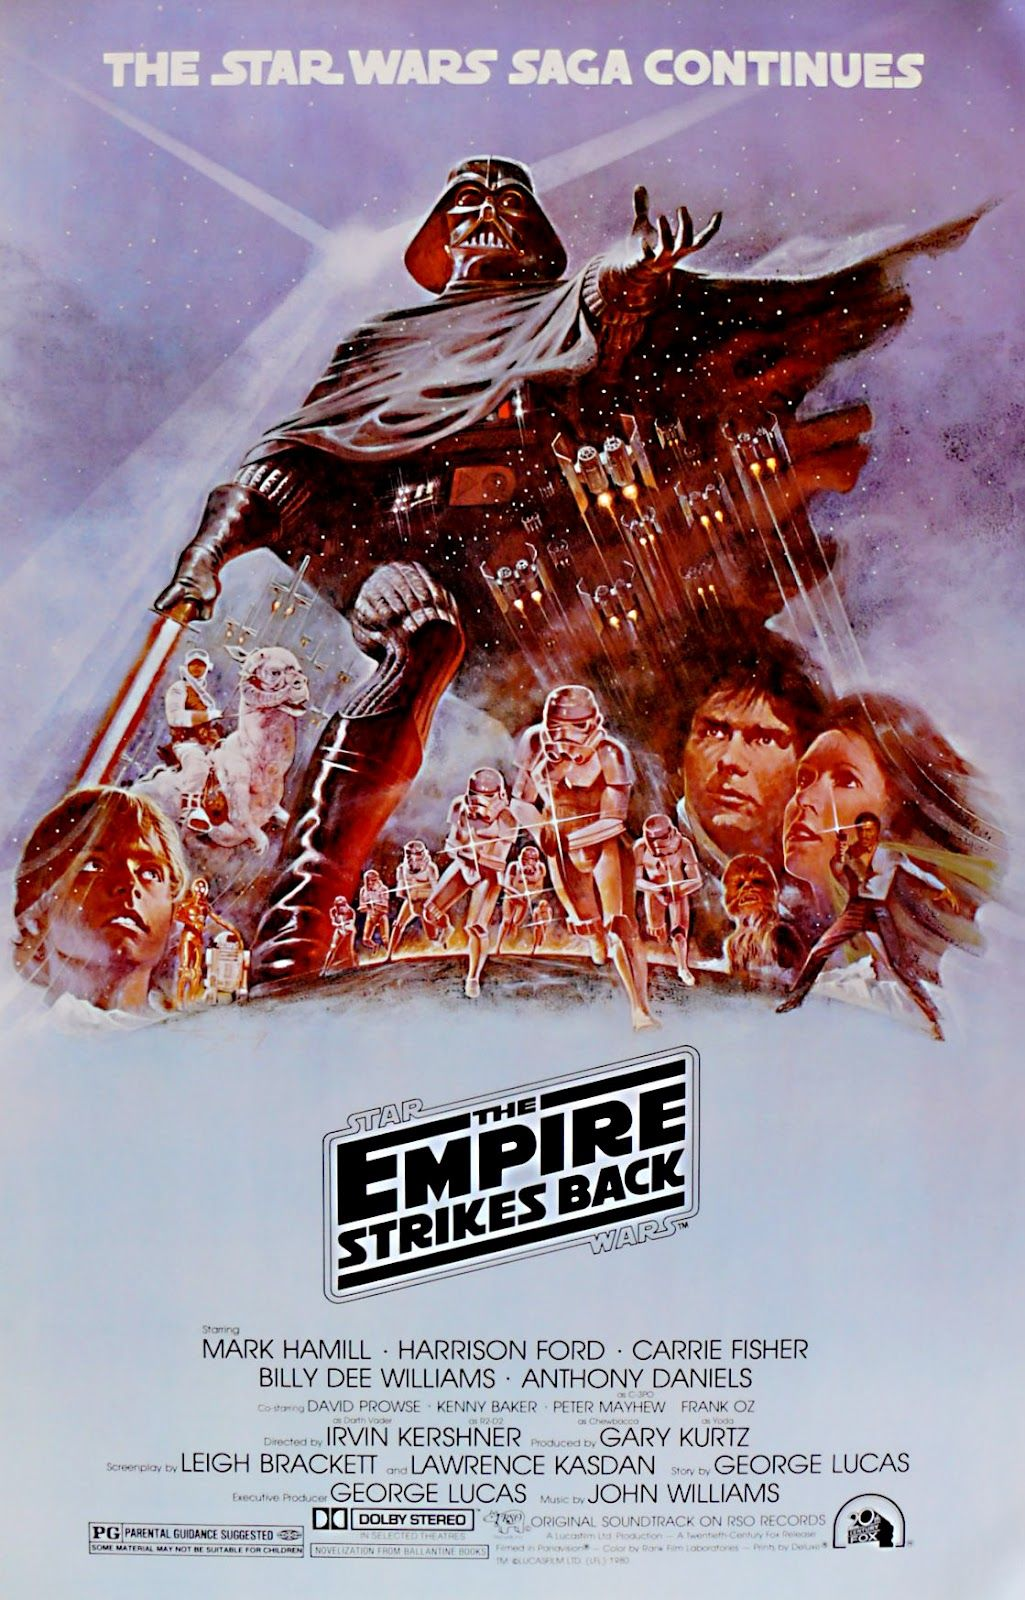 Star Wars Empire Strikes Back continues to amaze us with the light and sound technology during its premier.